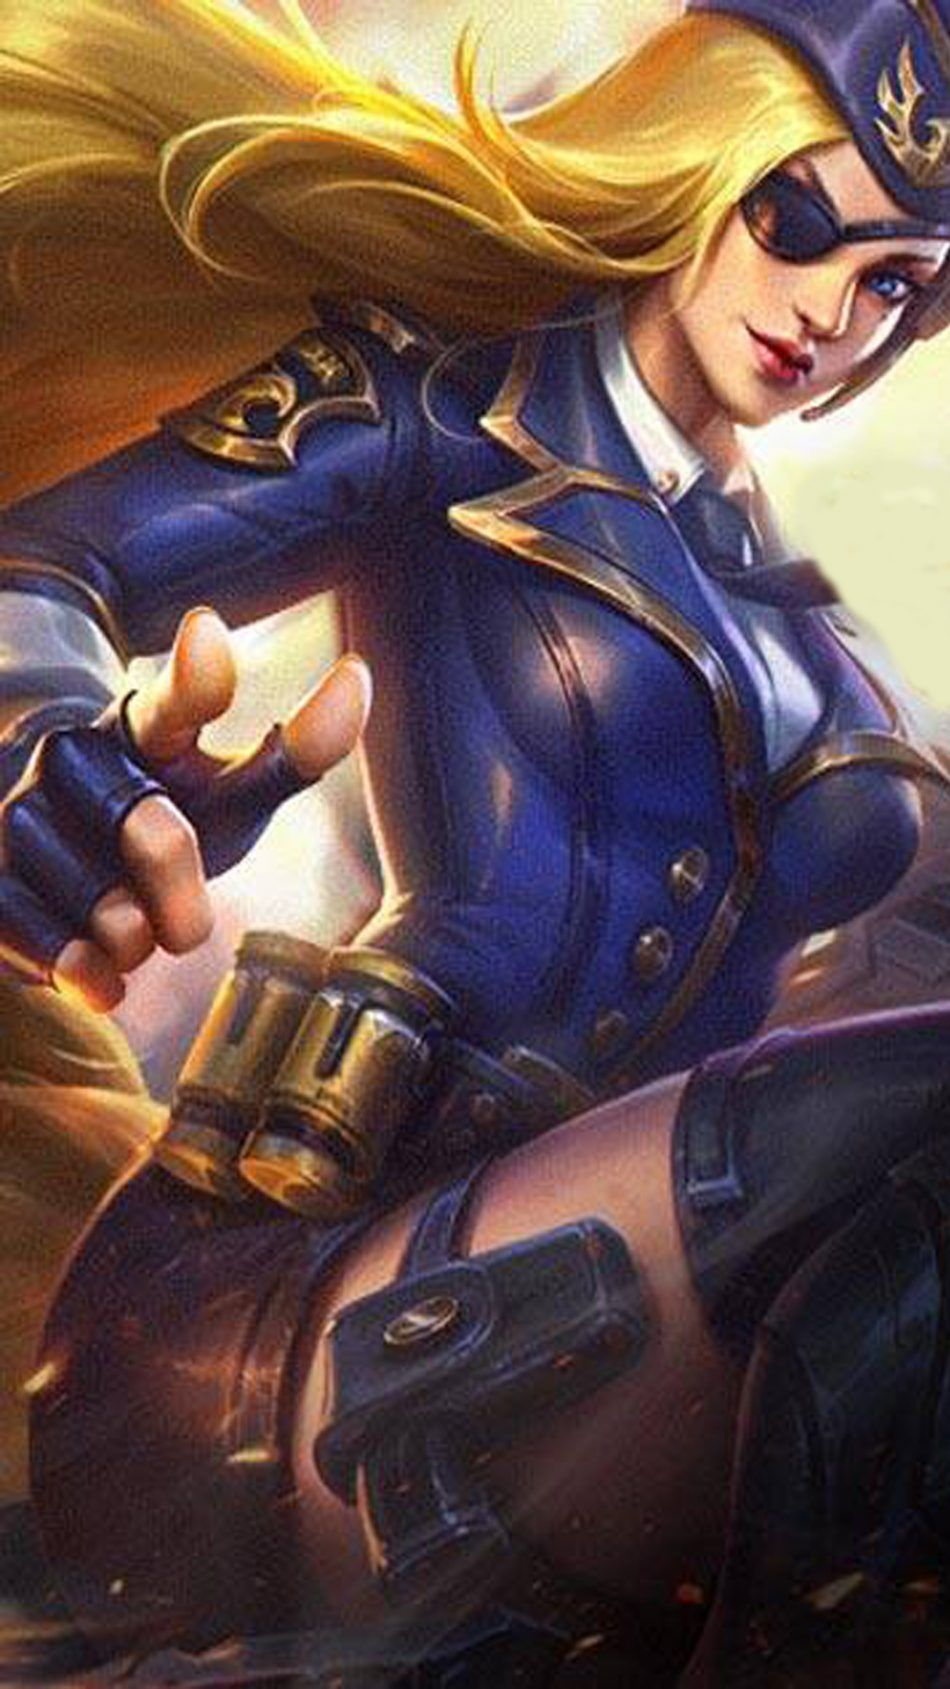 General Rosa Lesley Mobile Legends Hd Mobile Wallpaper Mobile Legend Wallpaper The Legend Of